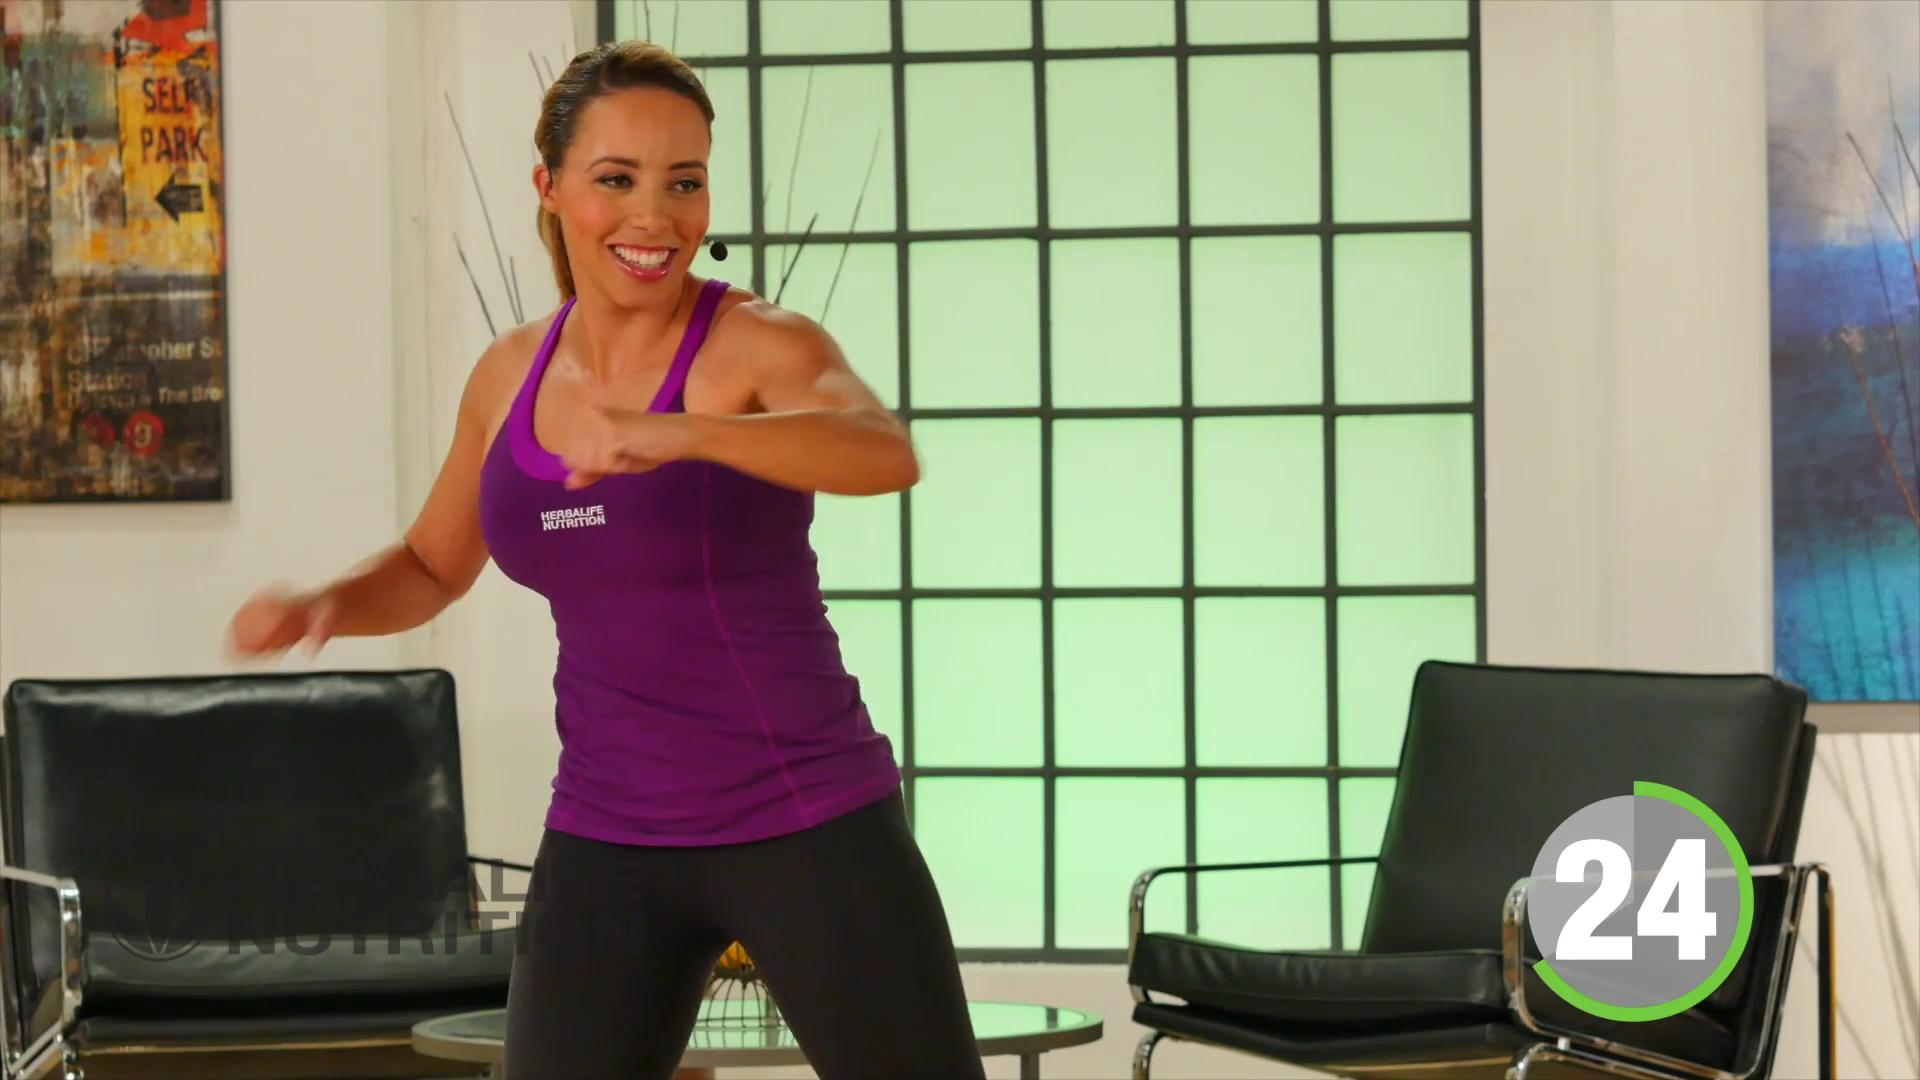 low impact cardio routine by Samantha clayton professional trainner Herbalife Nutrition gym